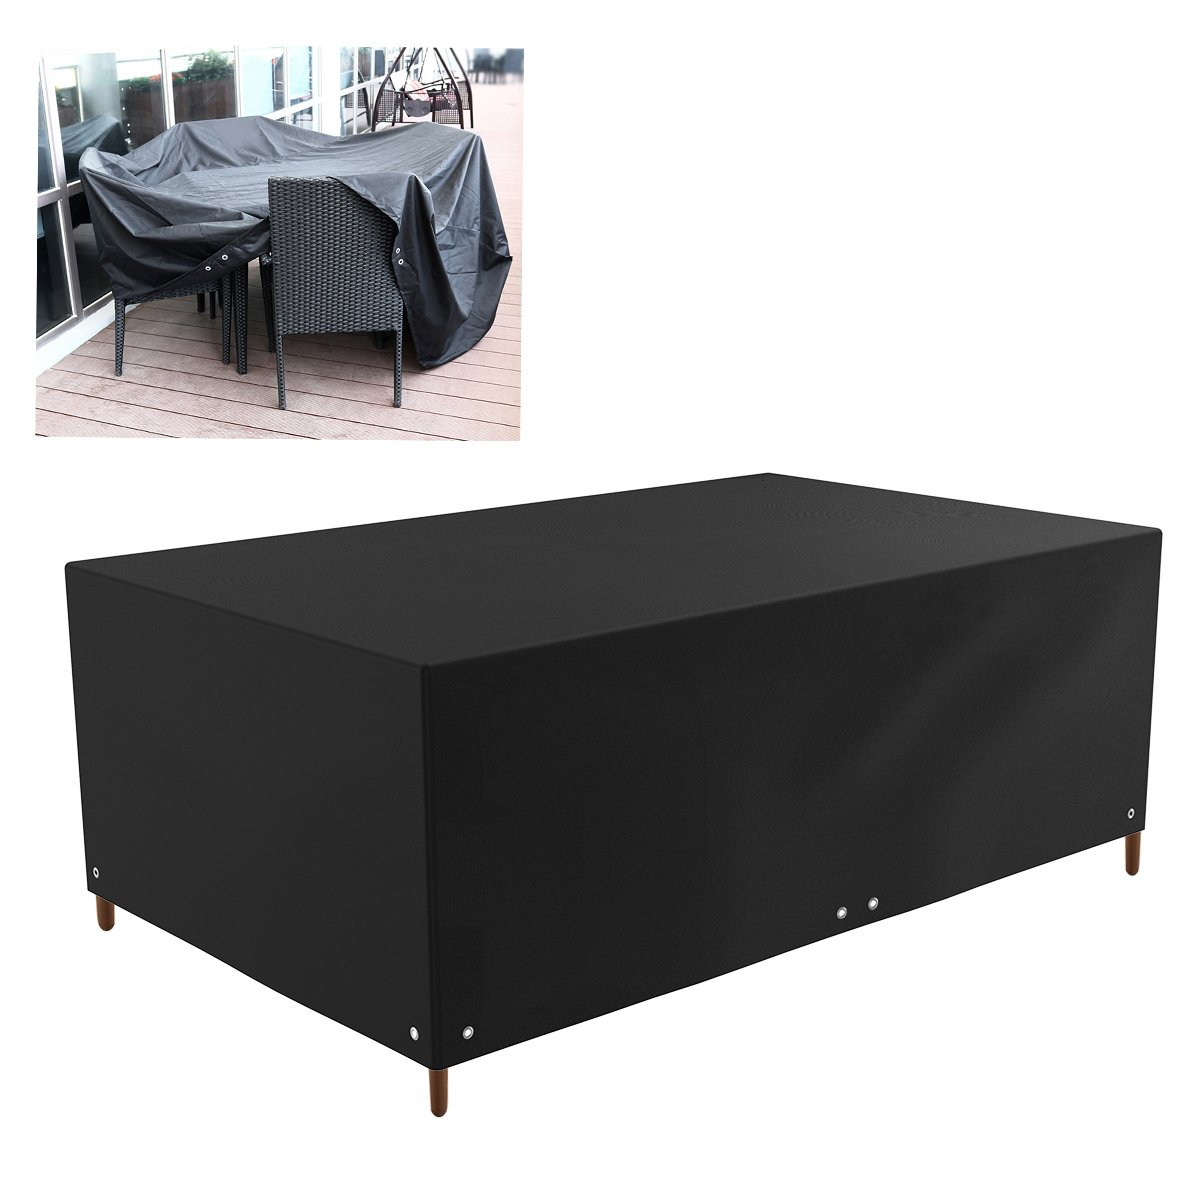 WINOMO 213x132x74cm Patio Covers Furniture Outdoor Waterproof Sofa Table Chair Set Protector